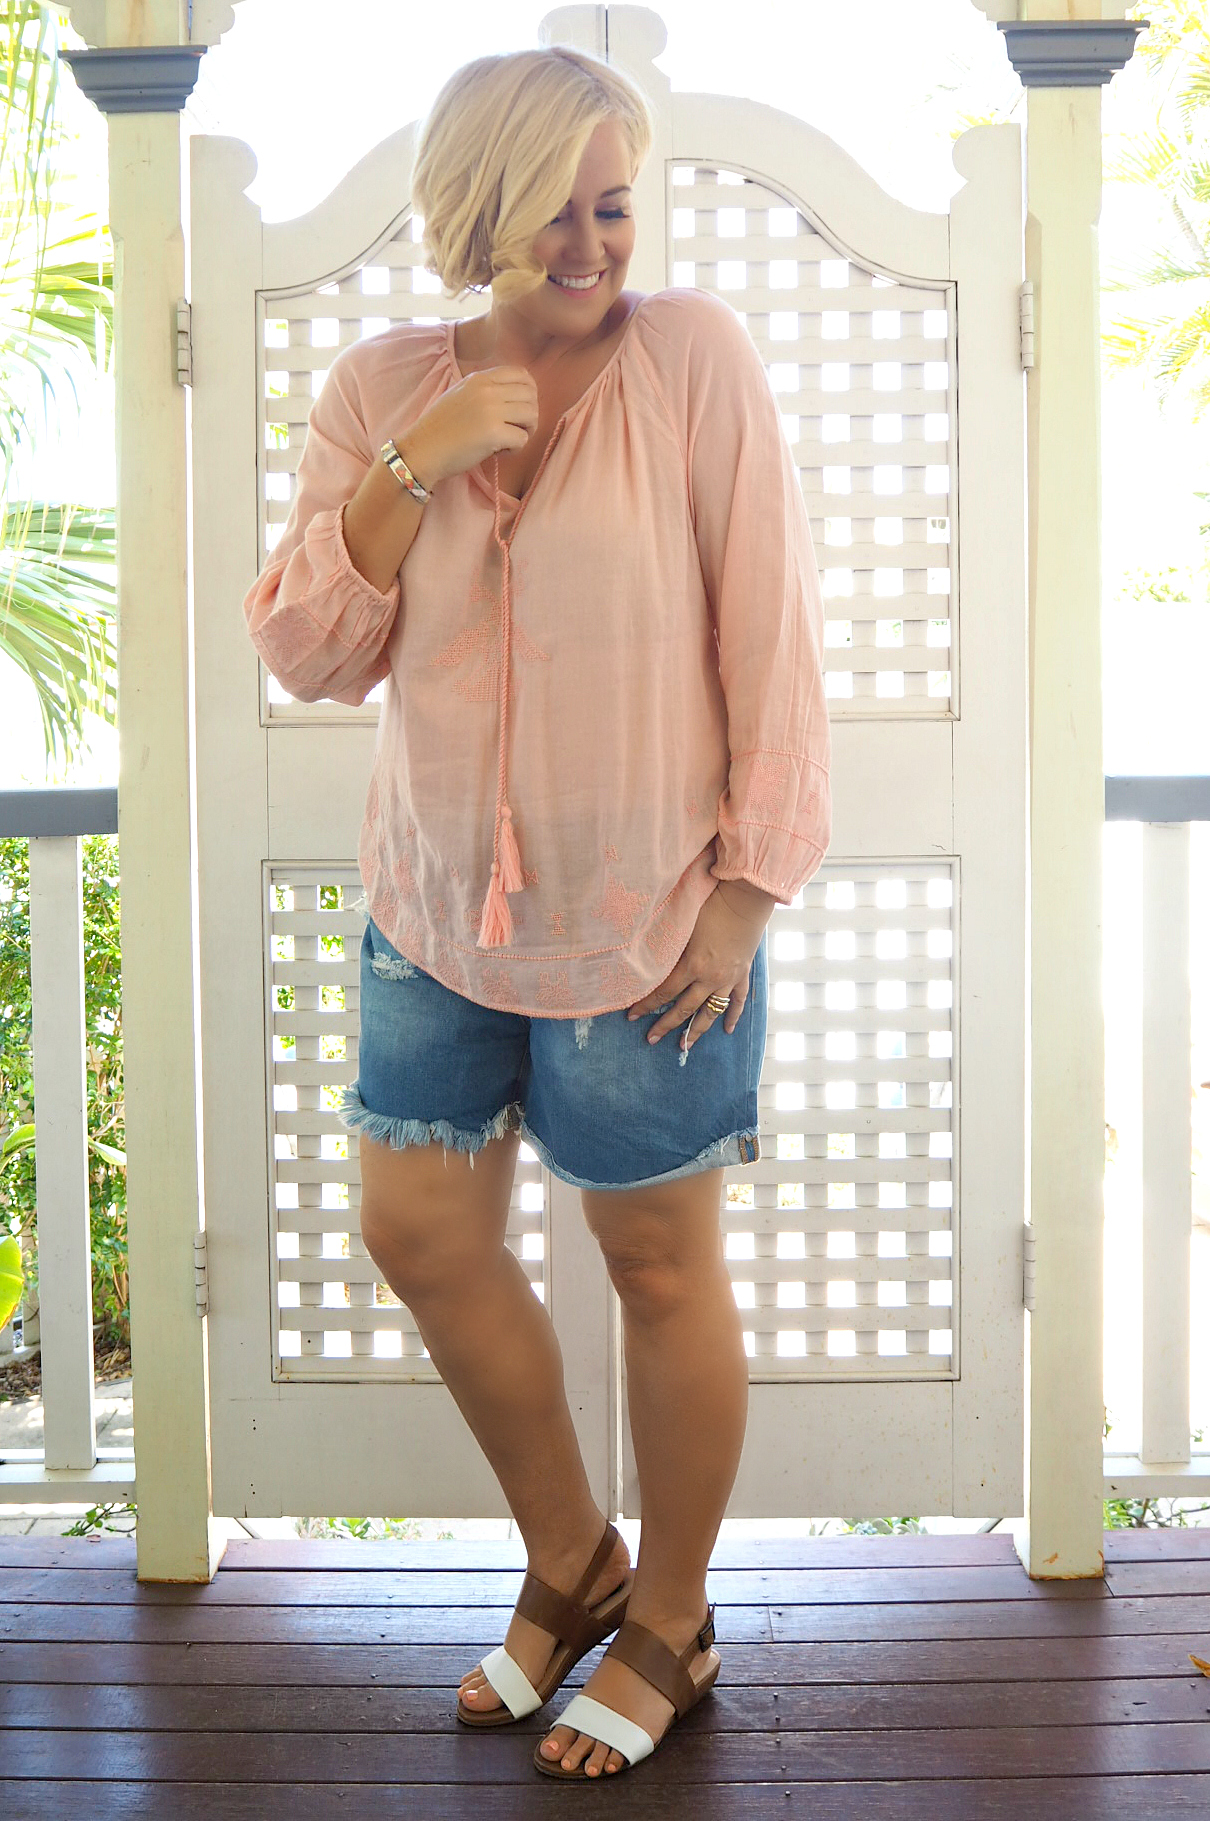 Birdsnest top | Bohemian Traders shorts | FRANKiE4 Footwear LiBBi sandals